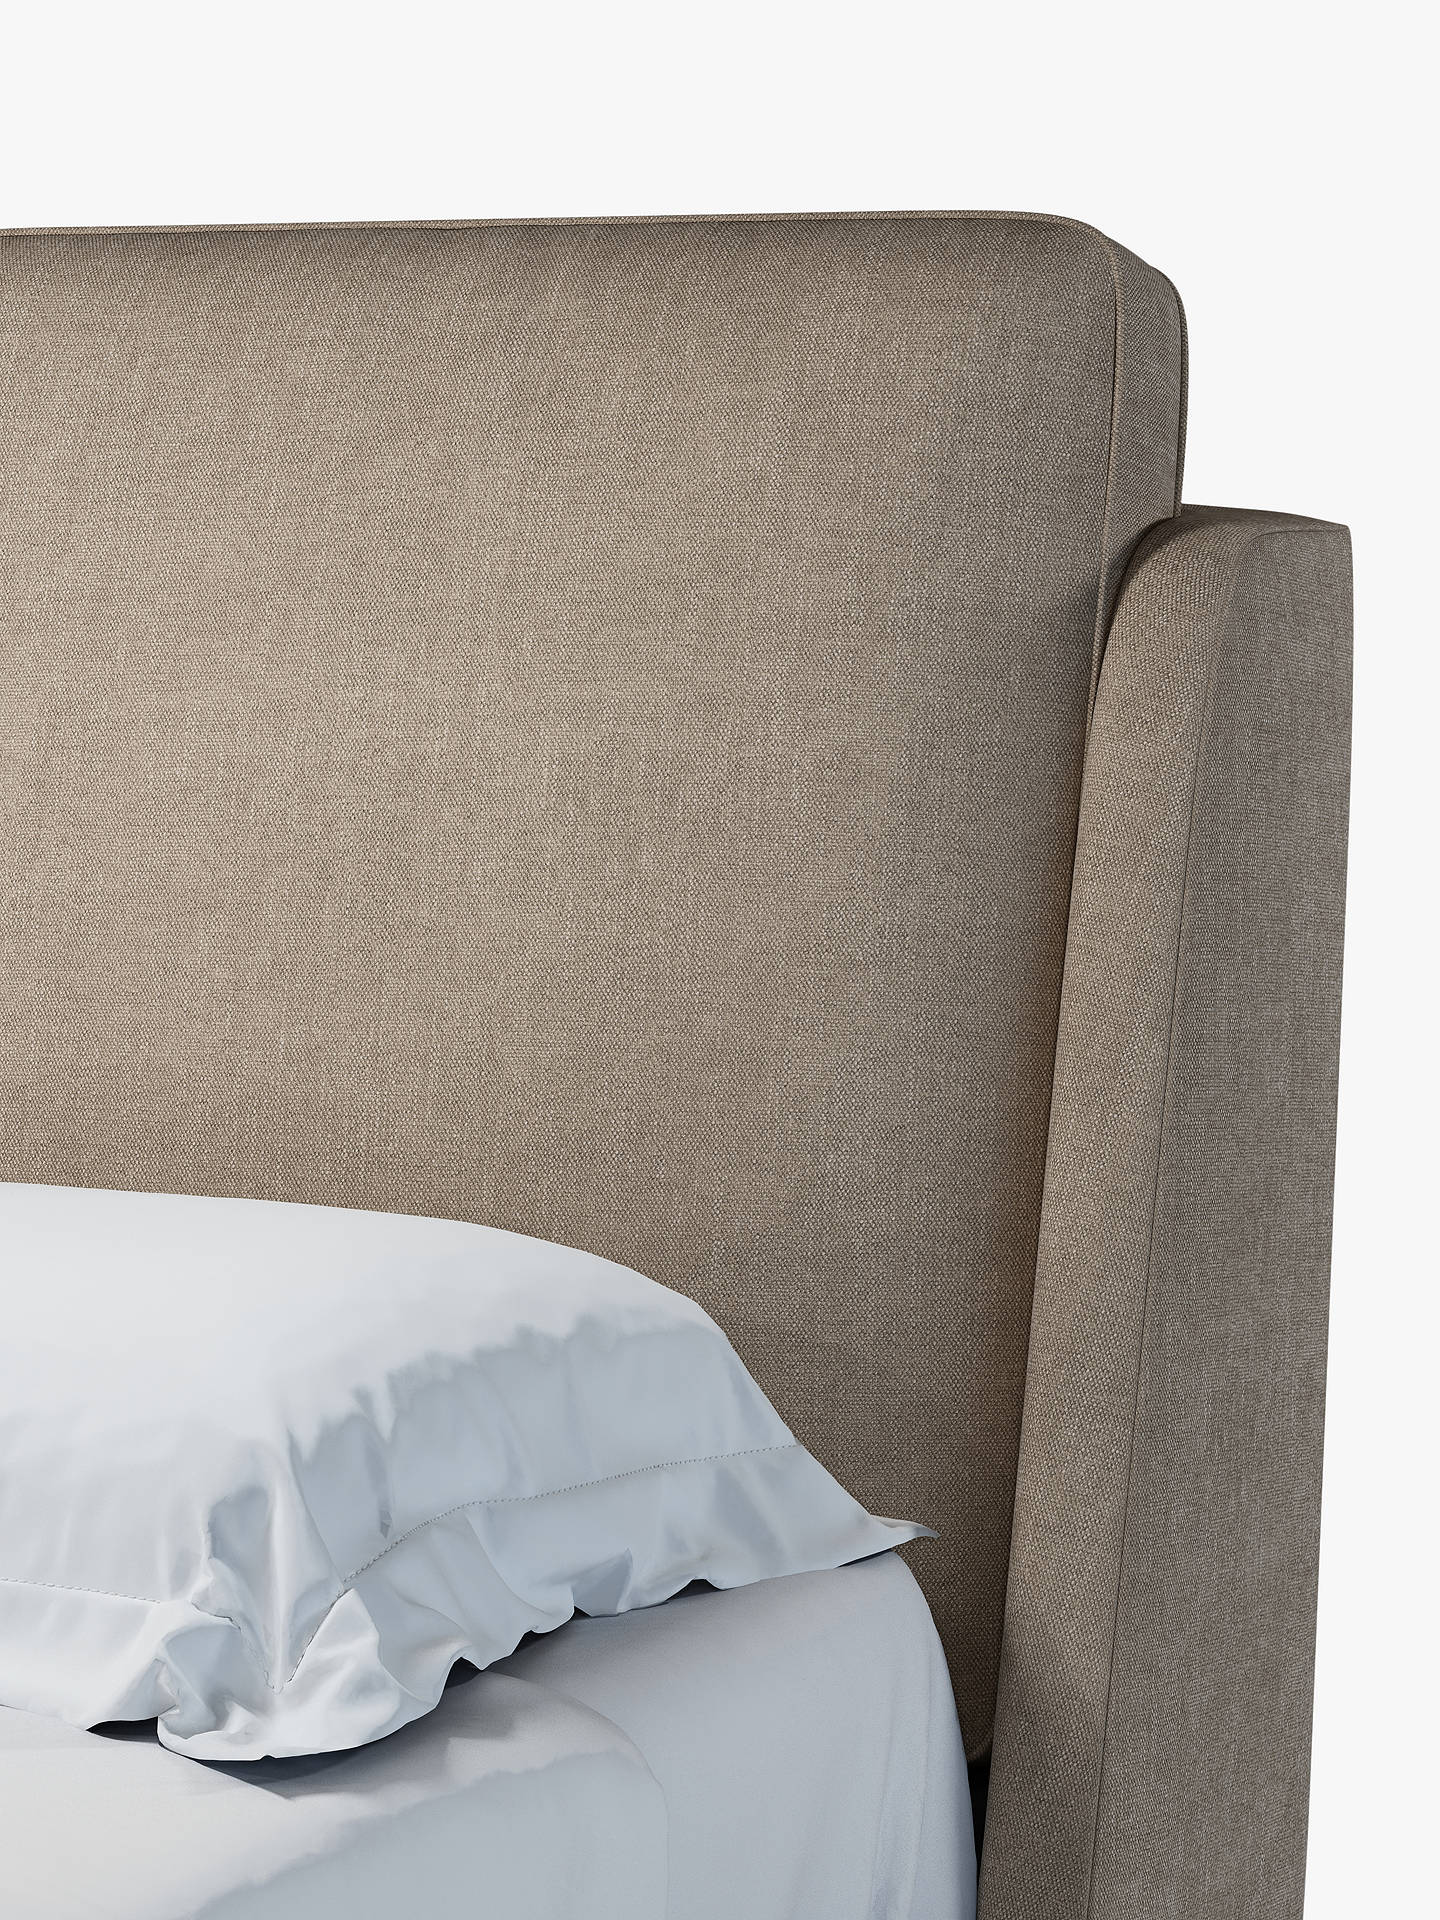 Buy John Lewis & Partners Giorgio Upholstered Bed Frame, King Size, Erin Mole Online at johnlewis.com